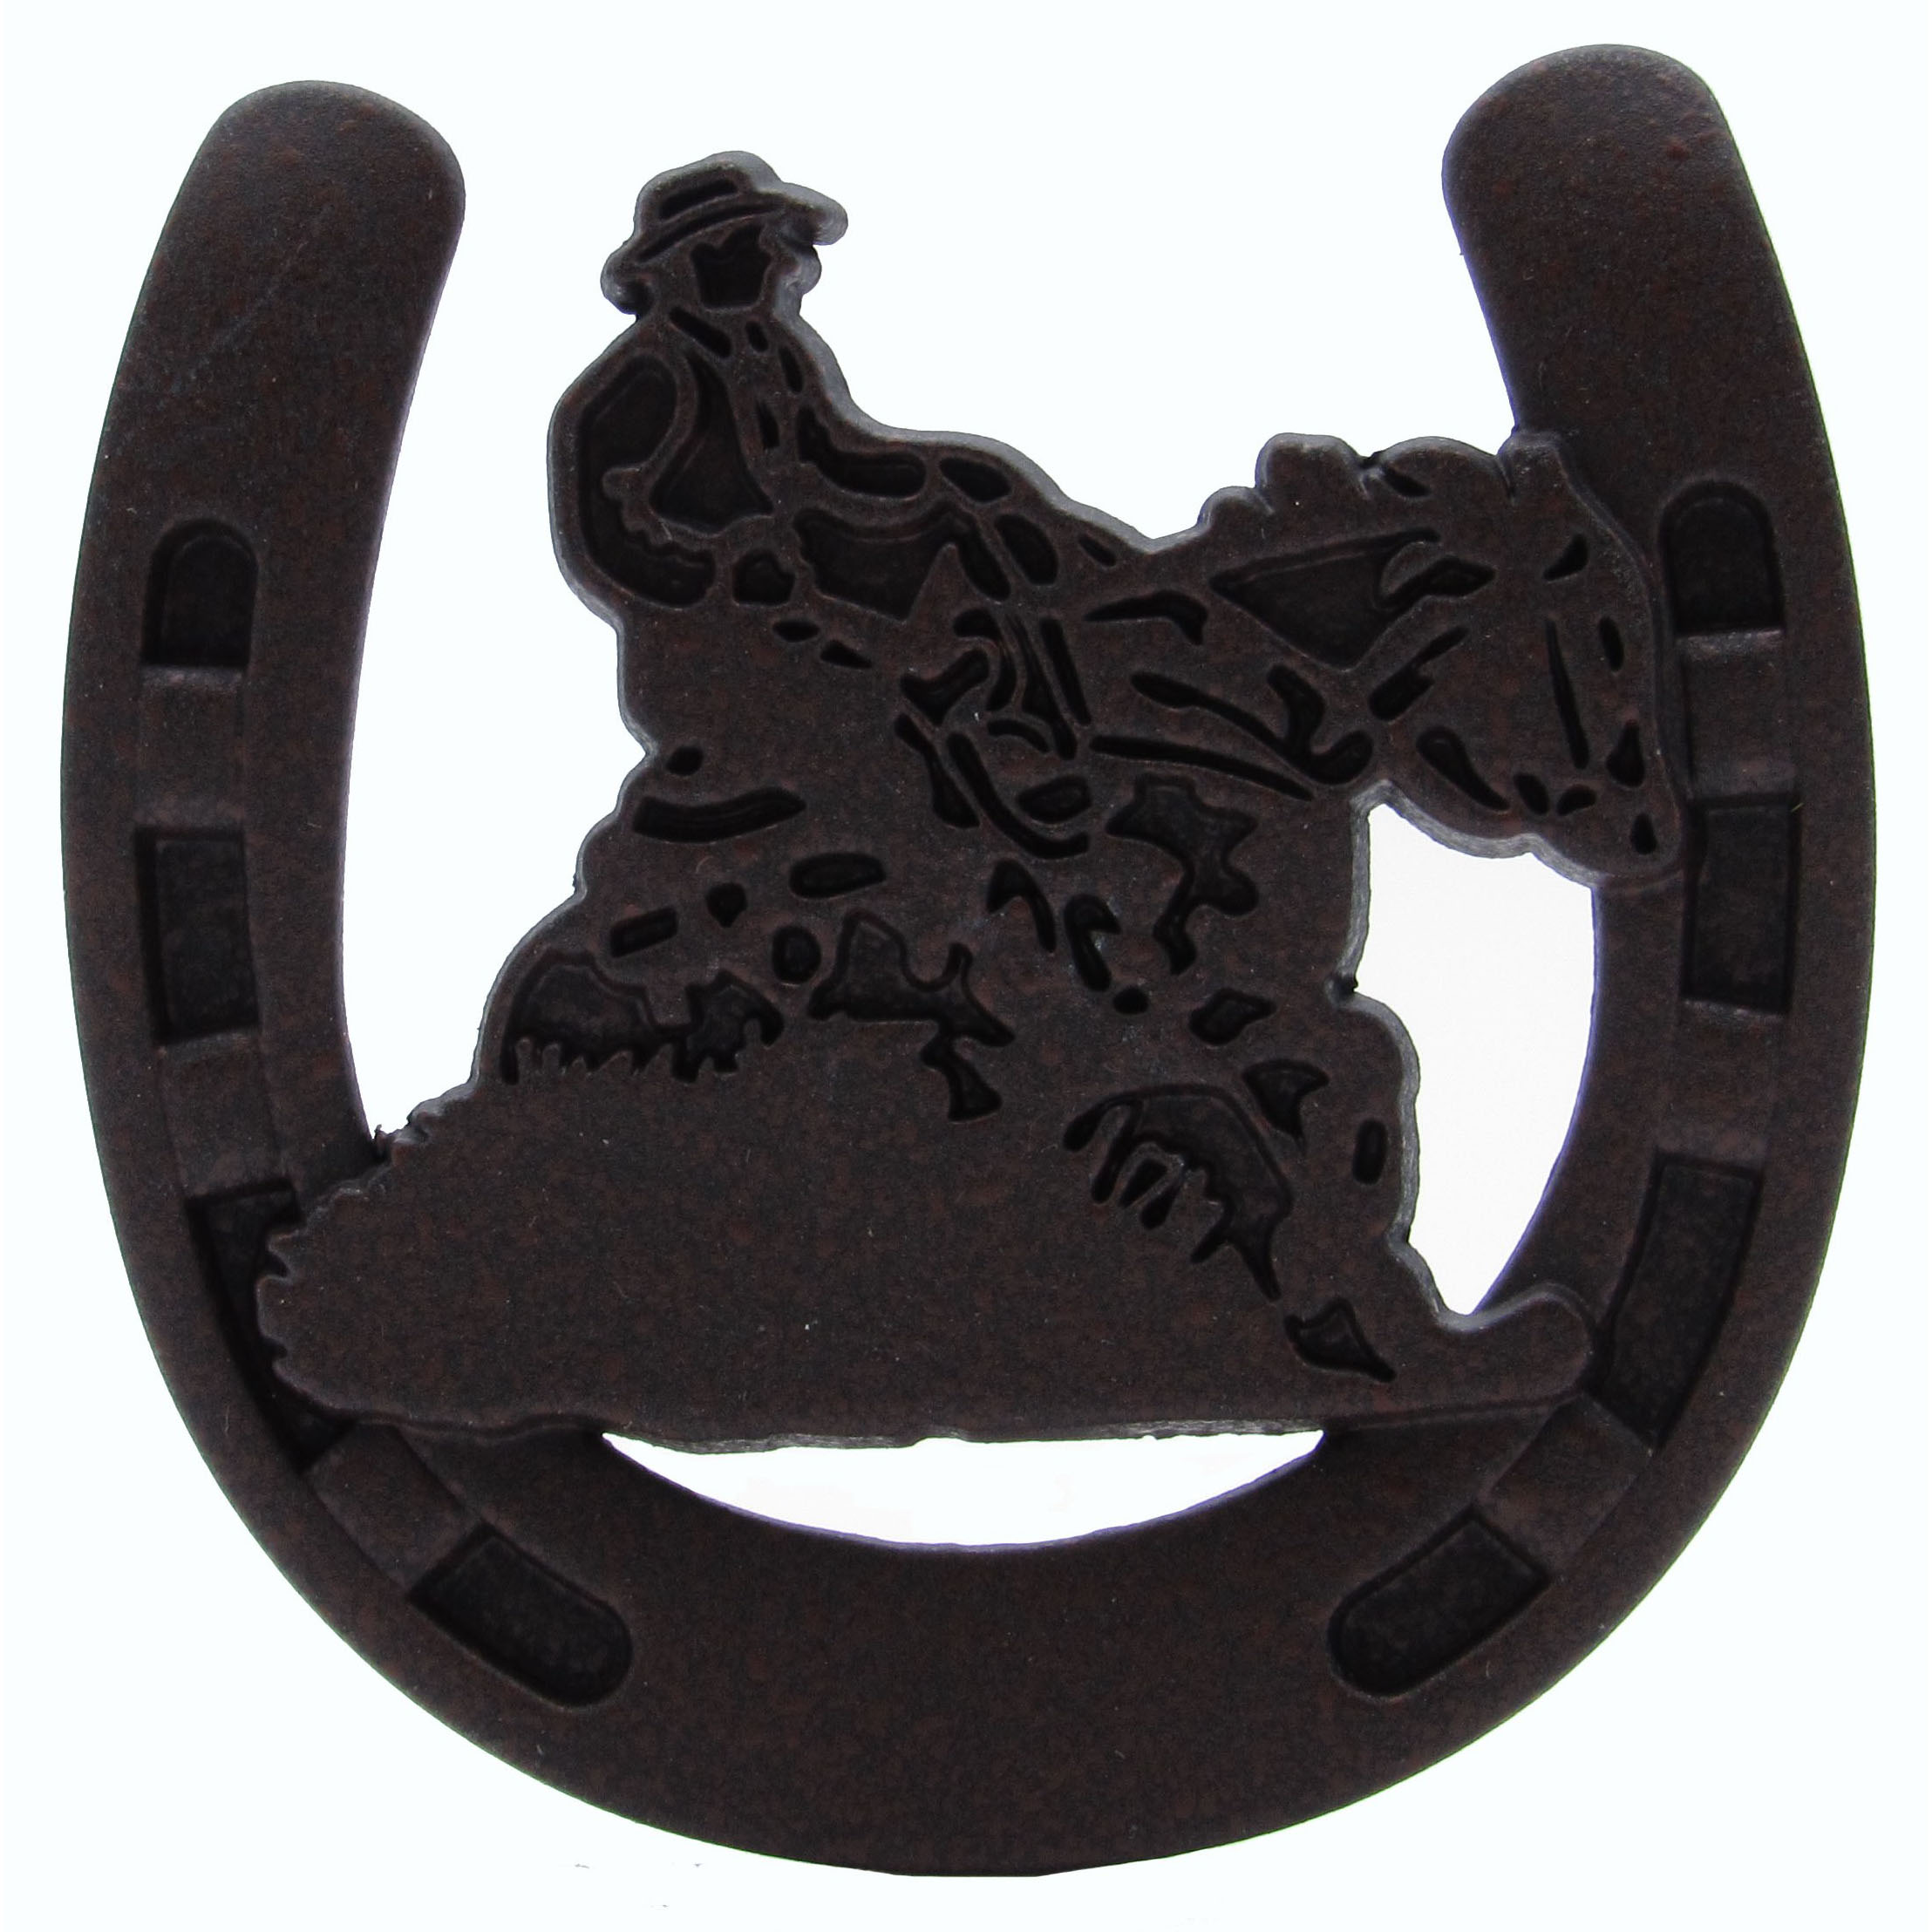 Riding Cowboy Horseshoe Knob, Rust Brown